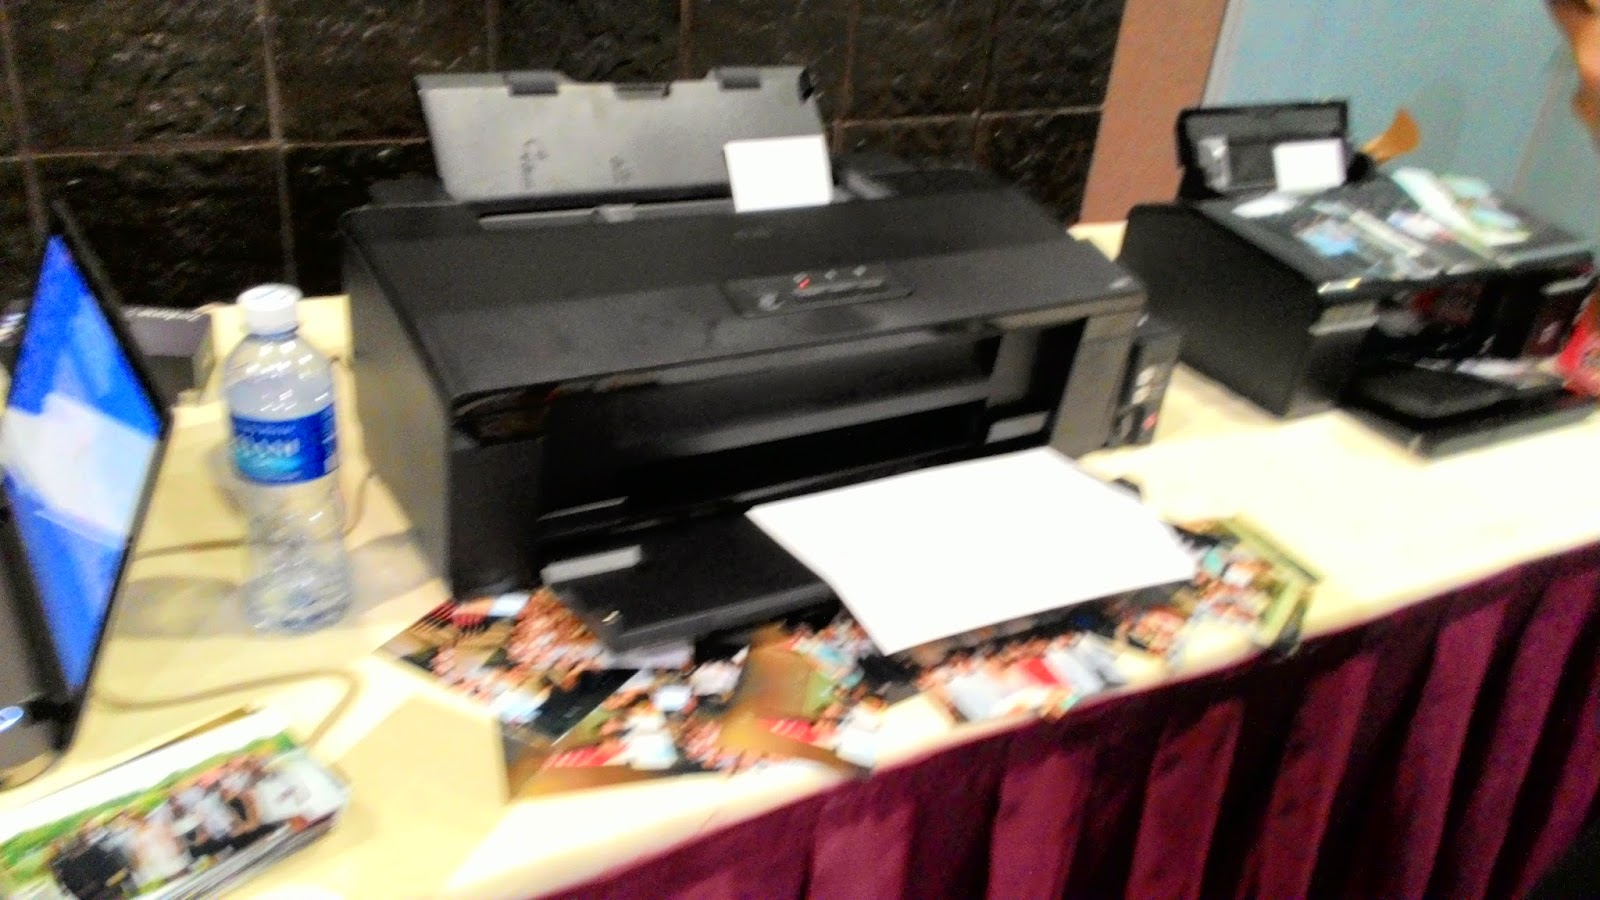 Materializing Memories Epson L1800 And L800 In Action The Tech Printer Were So Popular That They Attracted A Huge Crowd During Event Wanting Their Photos Printed On Spot